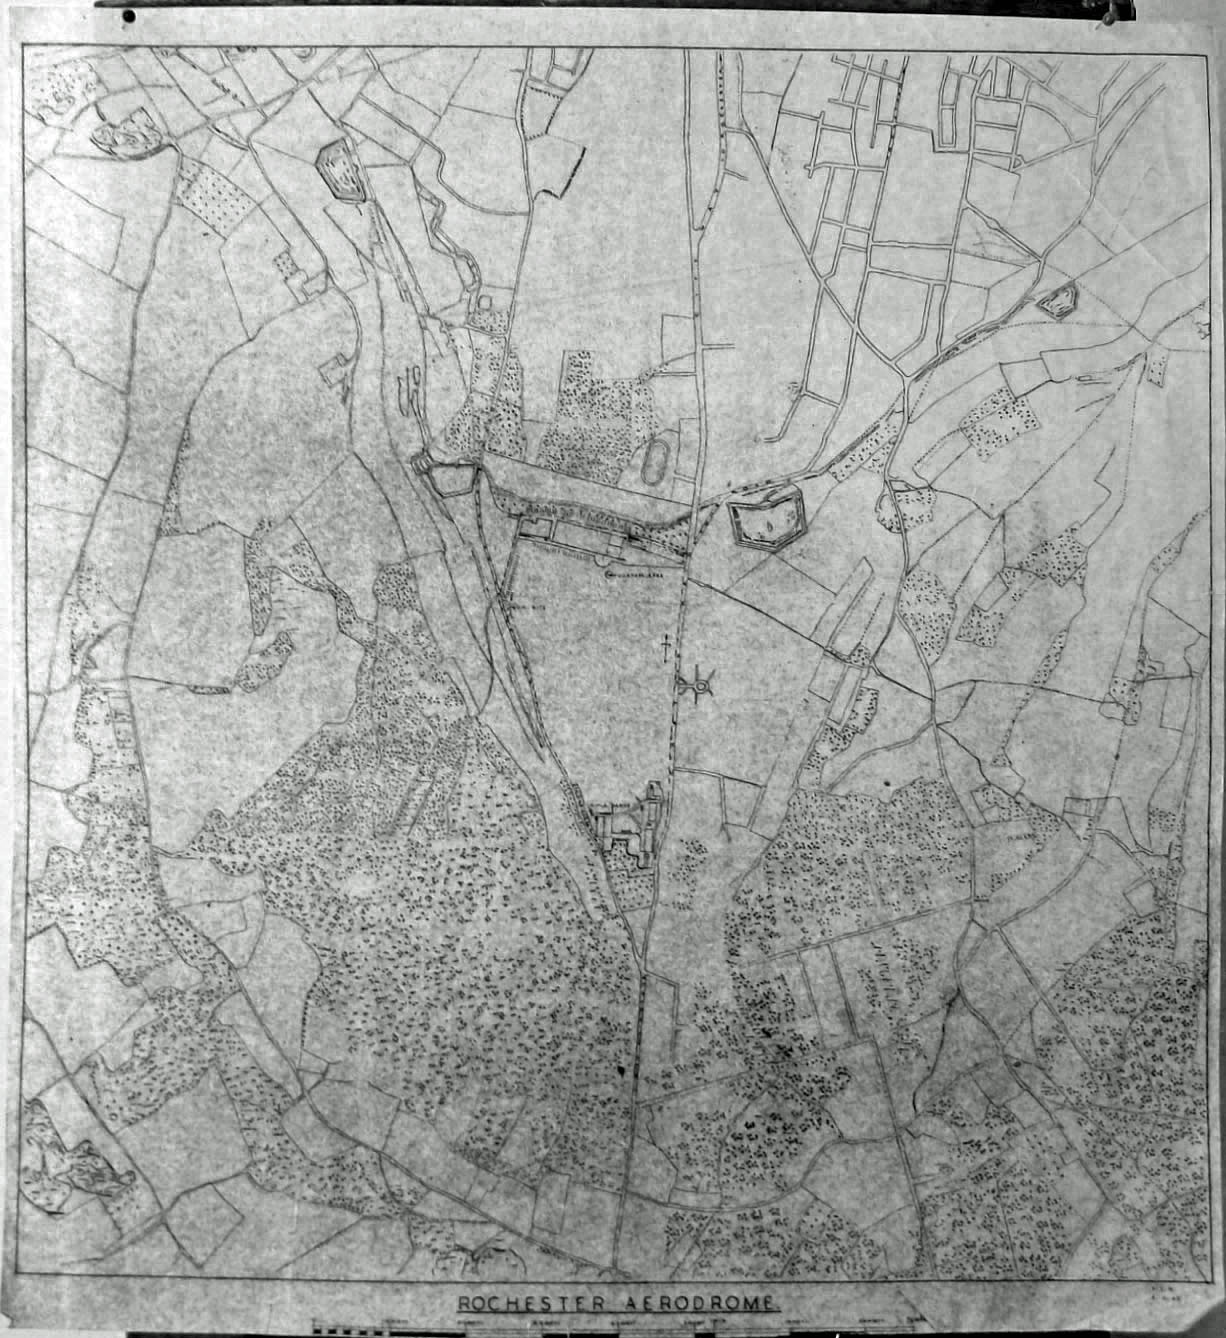 Rochester Aerodrome. Old Map